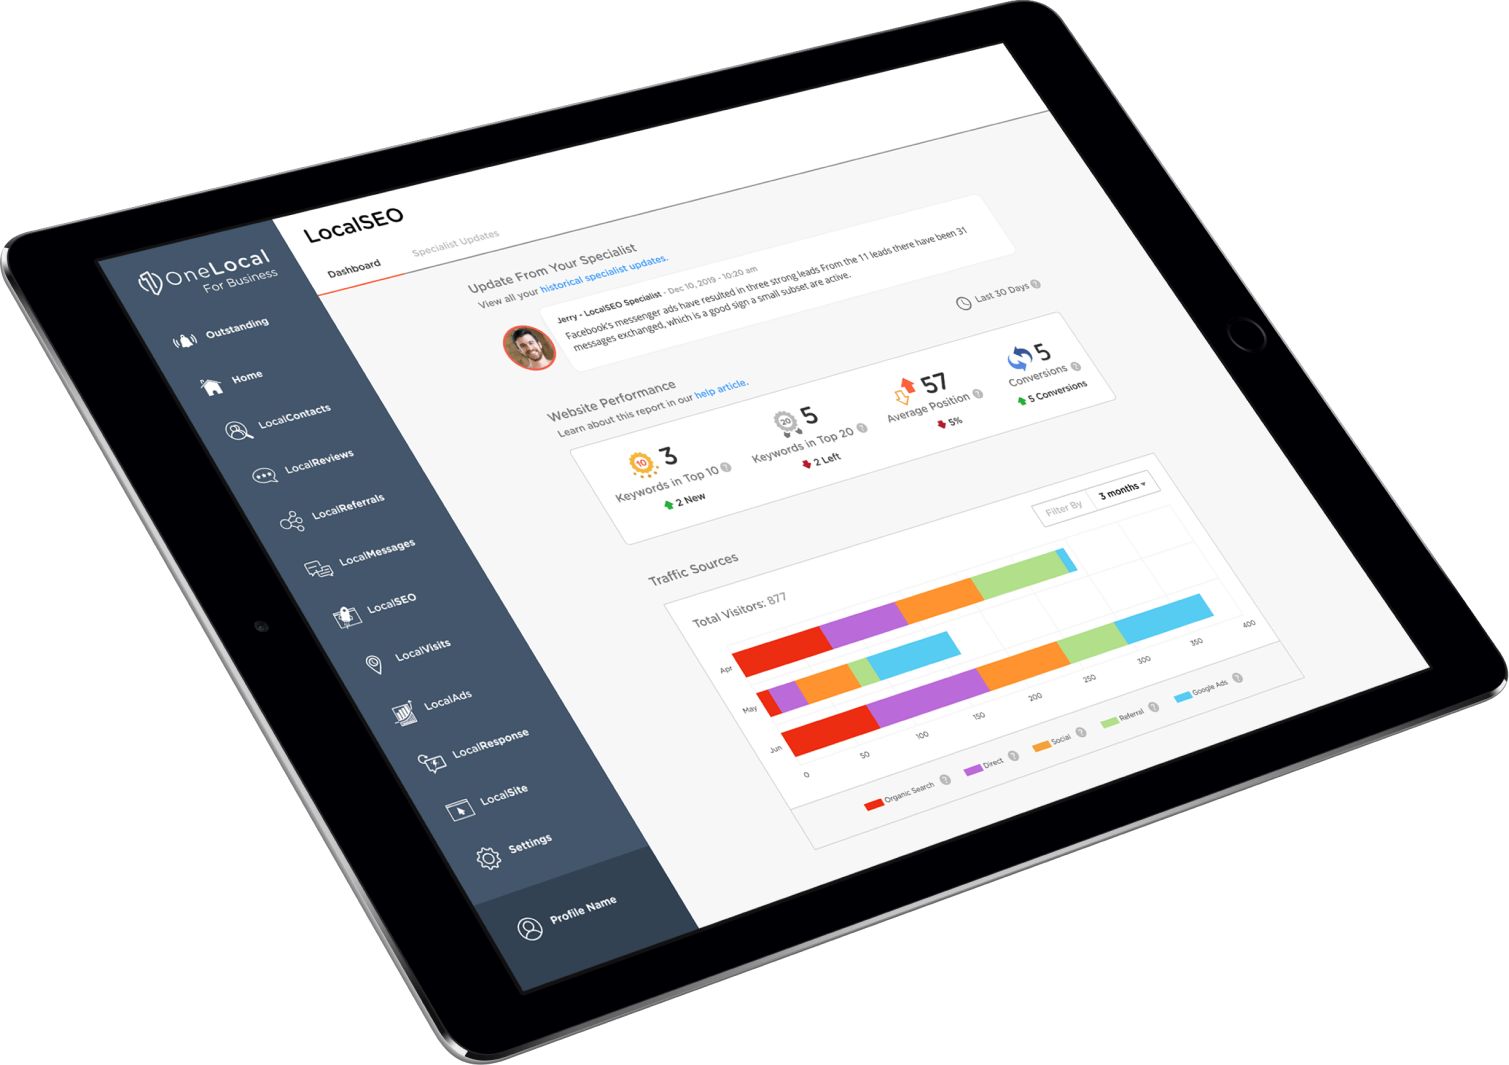 LocalSEO Software - The fully transparent dashboard lets you see exactly what is being done for your SEO and the results you are getting